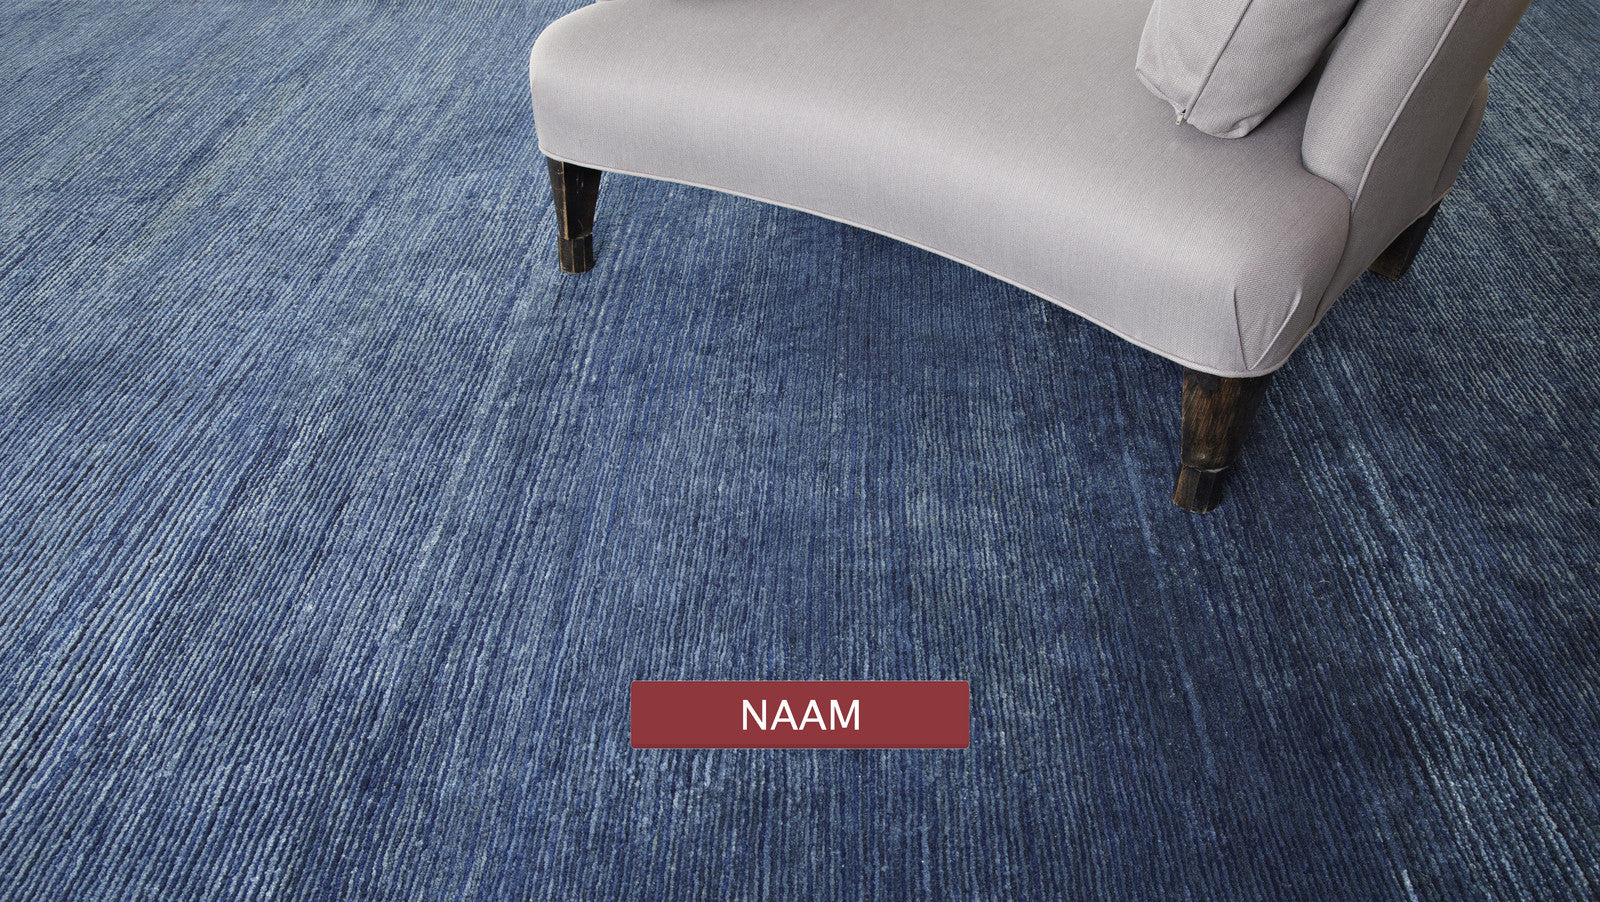 Naam is a museum quality rug handmade with handcarded himalayan wool and indigo vegetable dyes